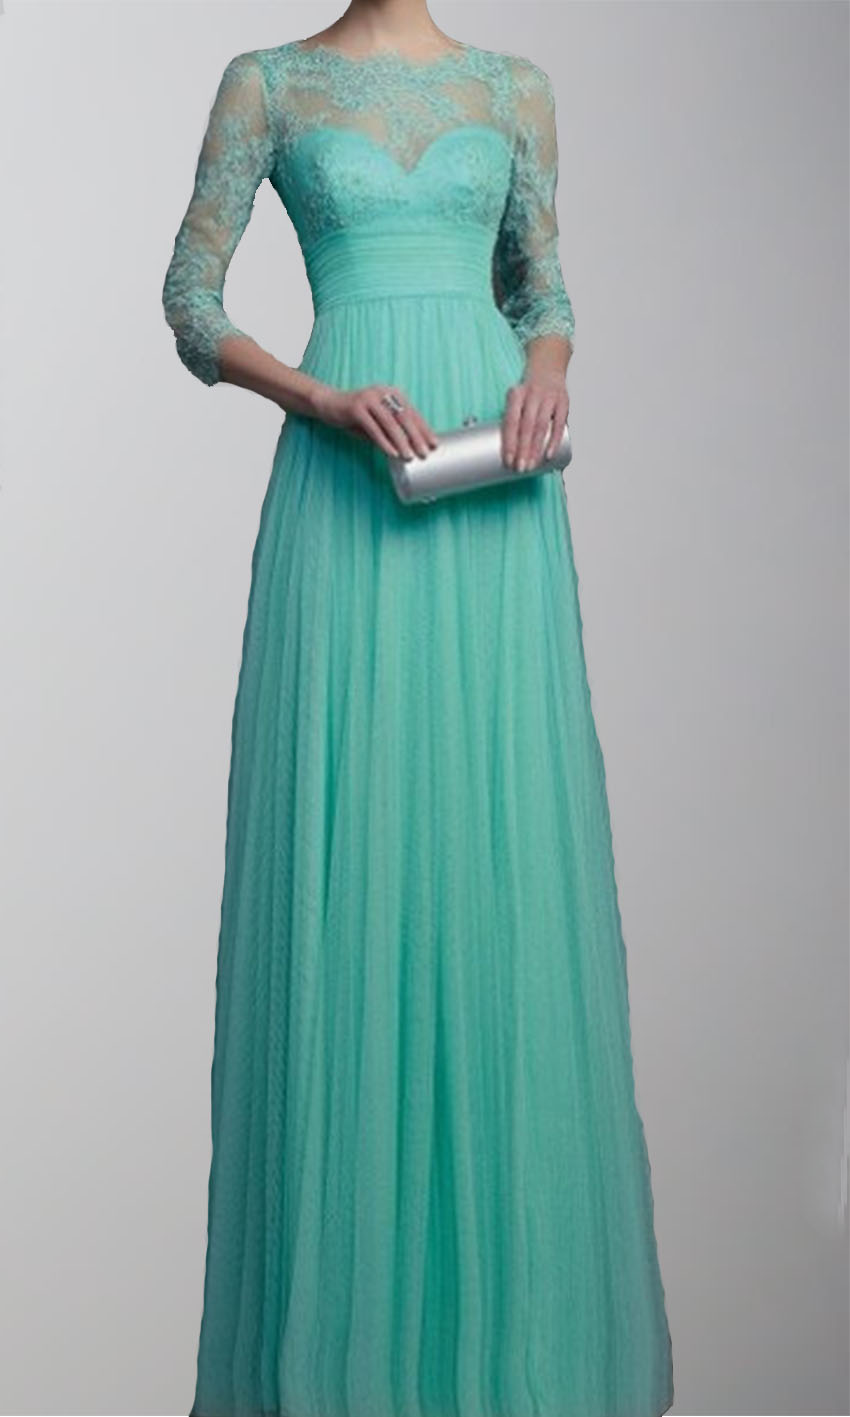 3/4 sleeves Lace Applique 2015 Long Prom Dresses KSP269 [KSP269 ...